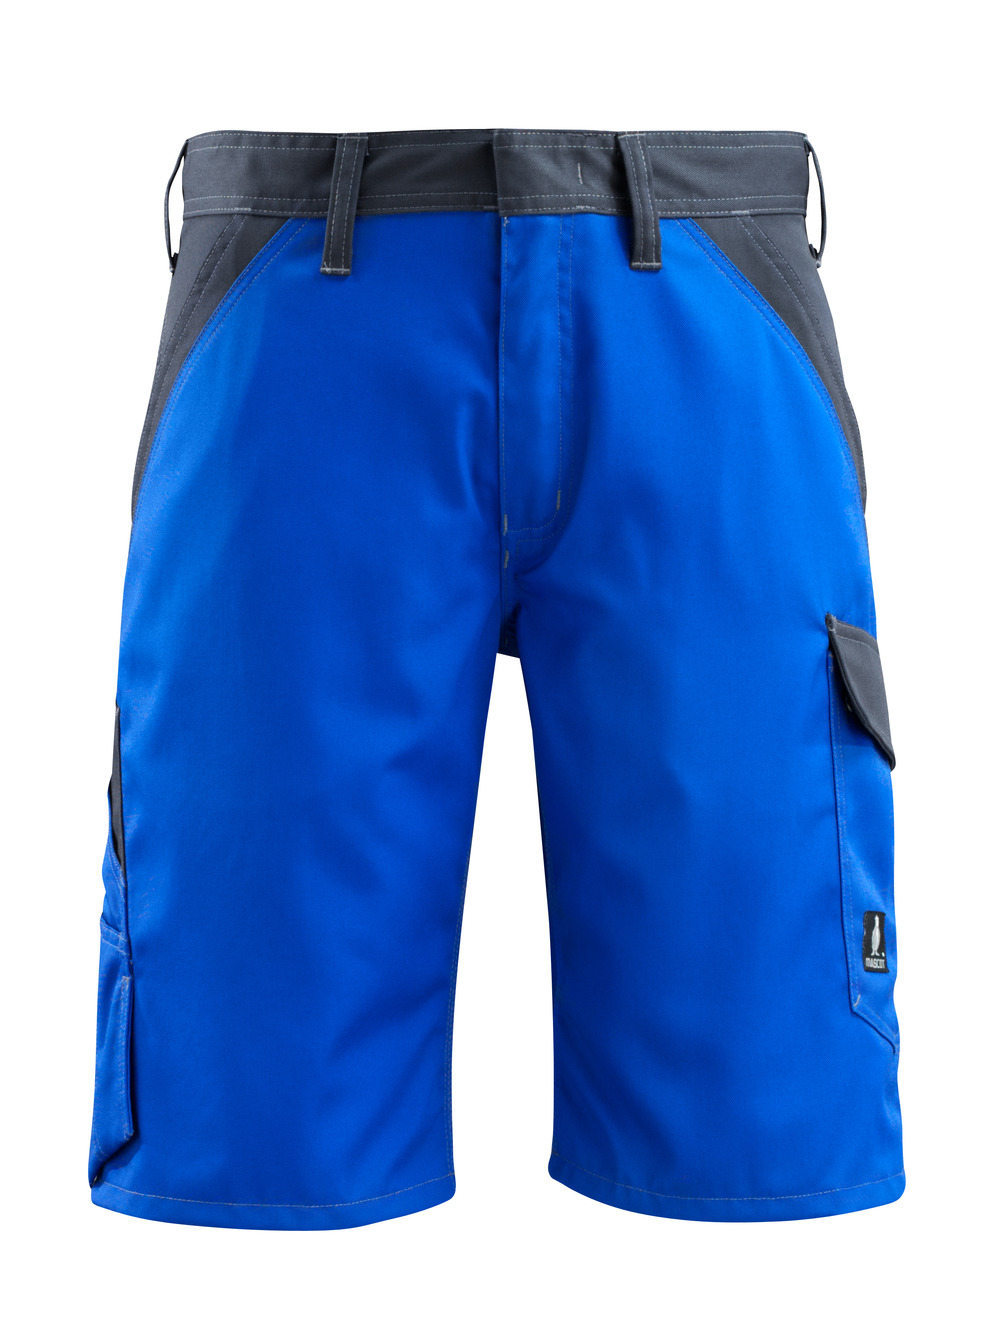 15749-330-11010 Shorts - royal/dark navy